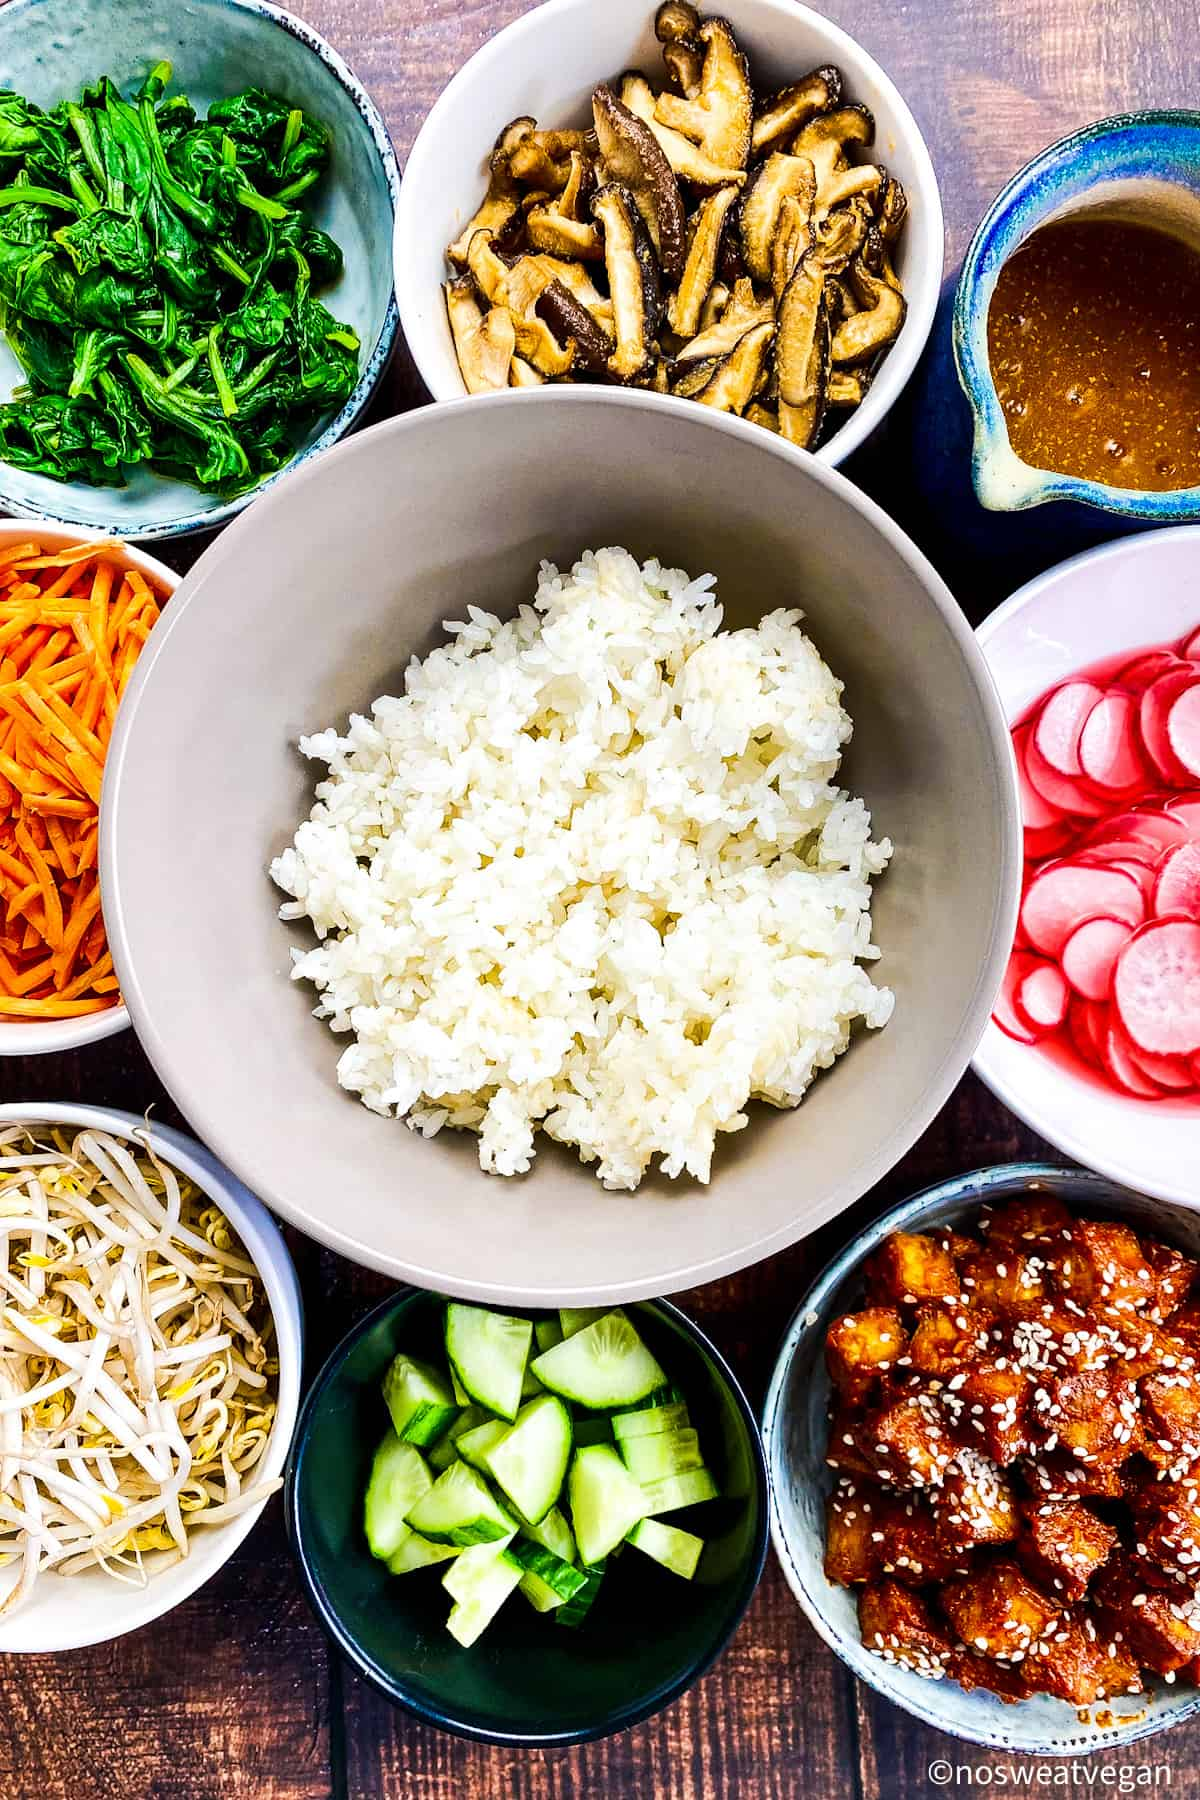 Bowl of rice surrounded by small bowls with the other bibimbap ingredients.